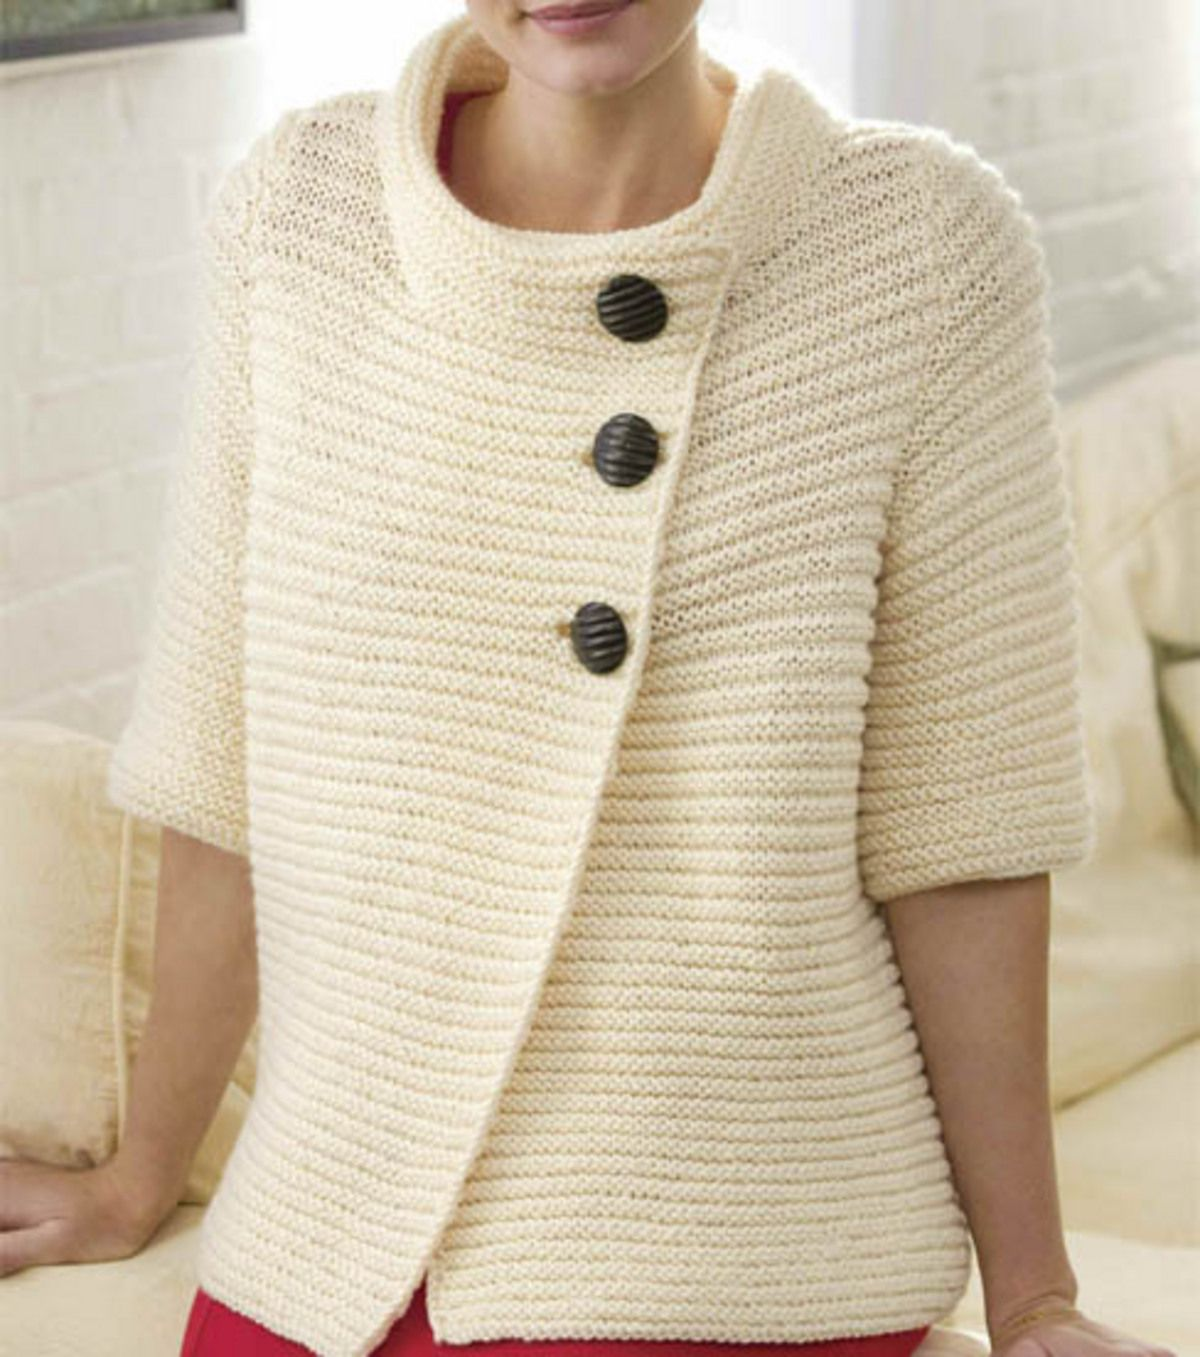 Ribbed Cardigan | Knitting/sewing | Pinterest | Tejido, Tejidos de ...